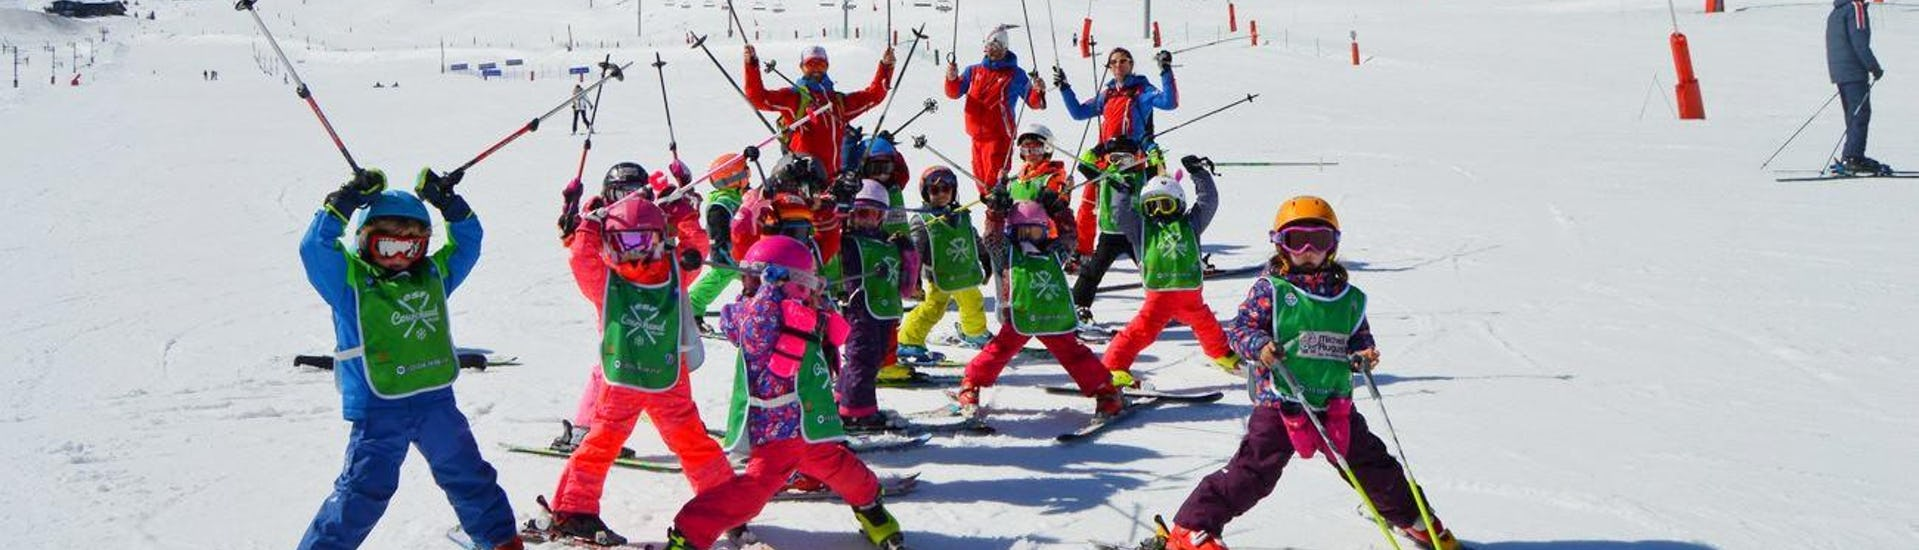 ski-lessons-for-kids-3-12-years-holiday-all-levels-esf-courchevel-hero